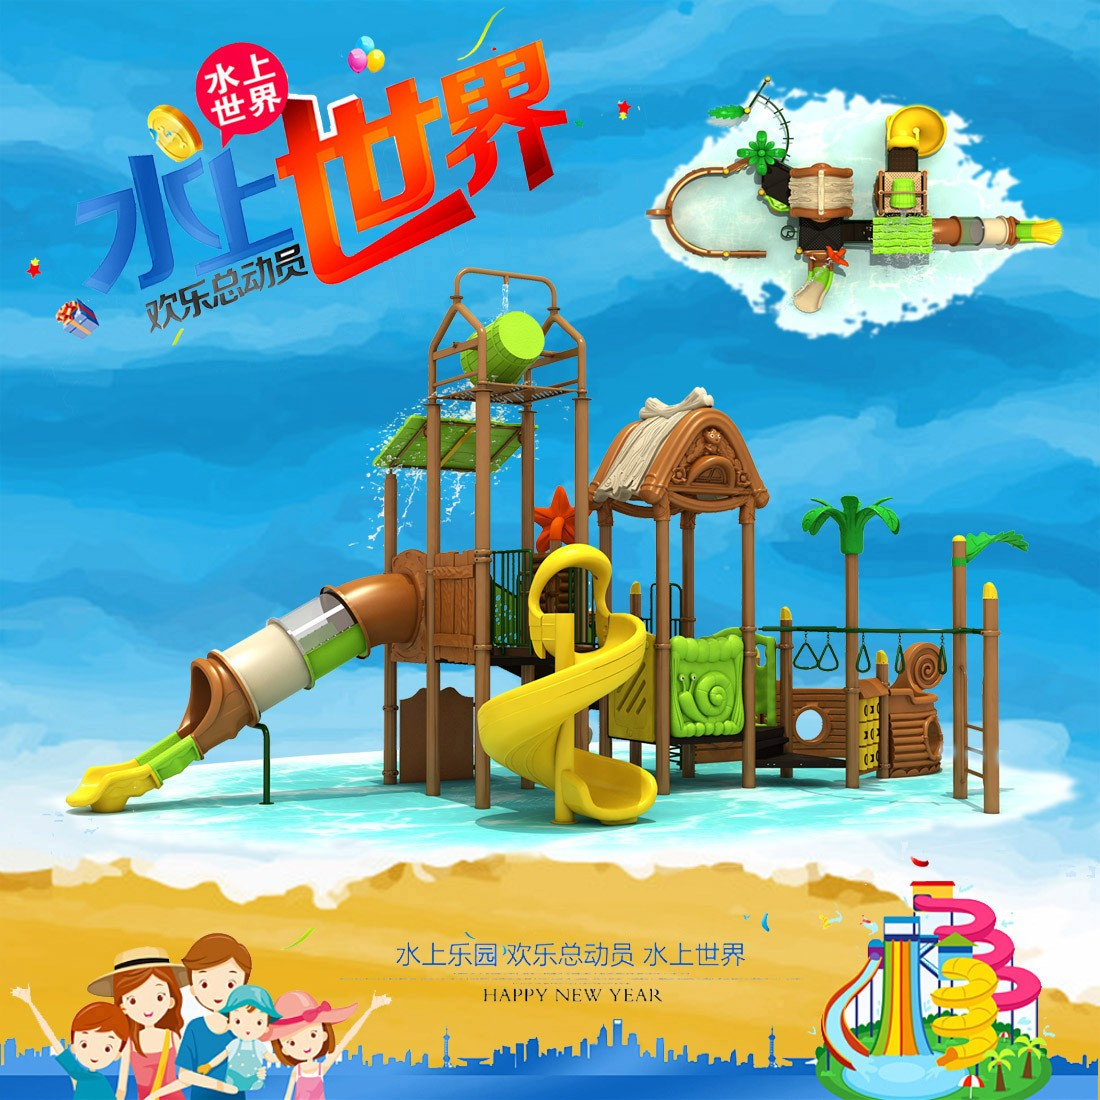 kompan playground equipment sale